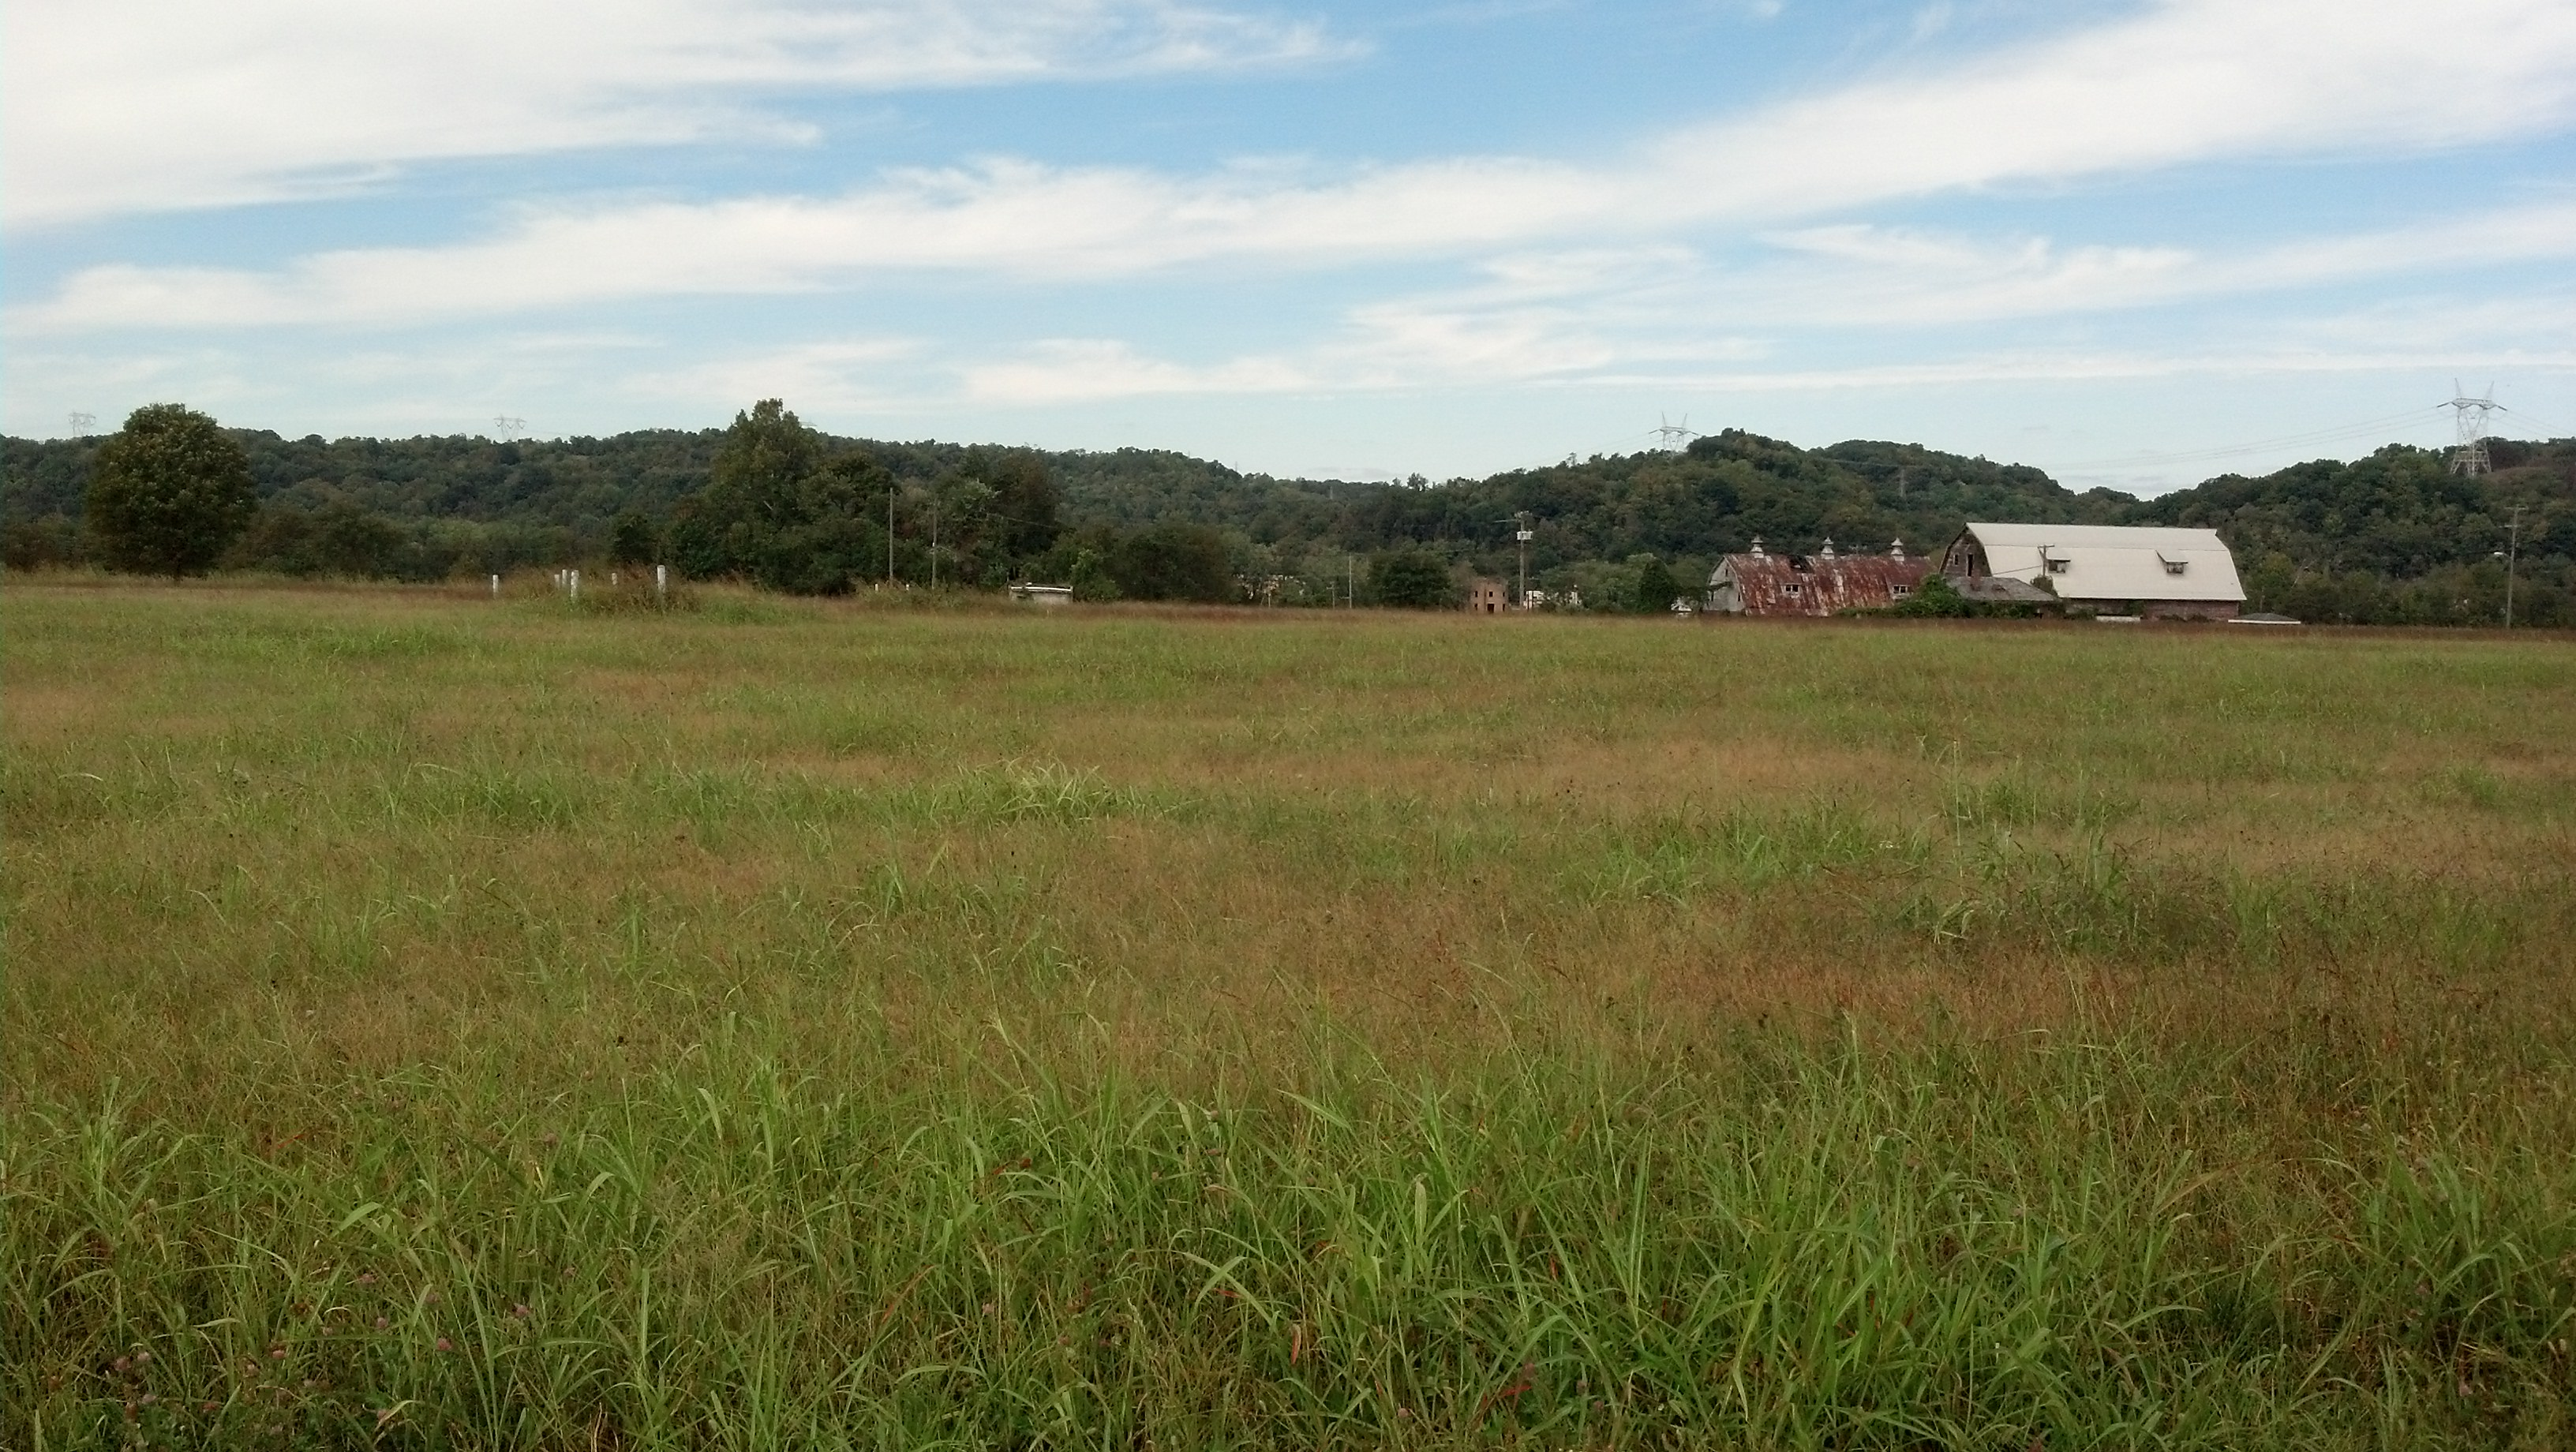 From Ohio River Road toward former Lakin Industrial School for Colored Boys